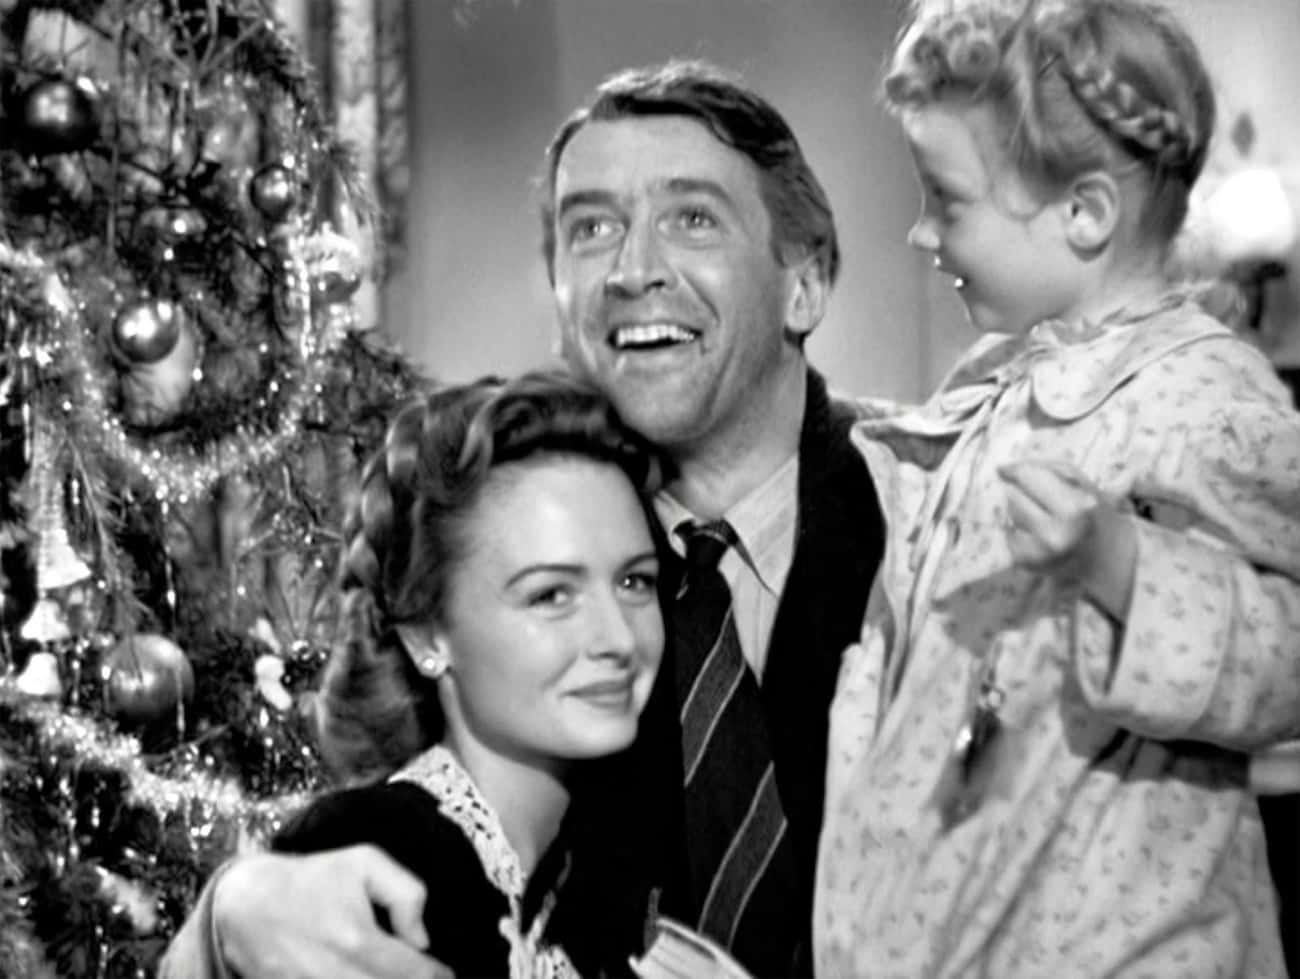 It's a Wonderful Life is listed (or ranked) 4 on the list 28 Great Films That Didn't Win Oscars